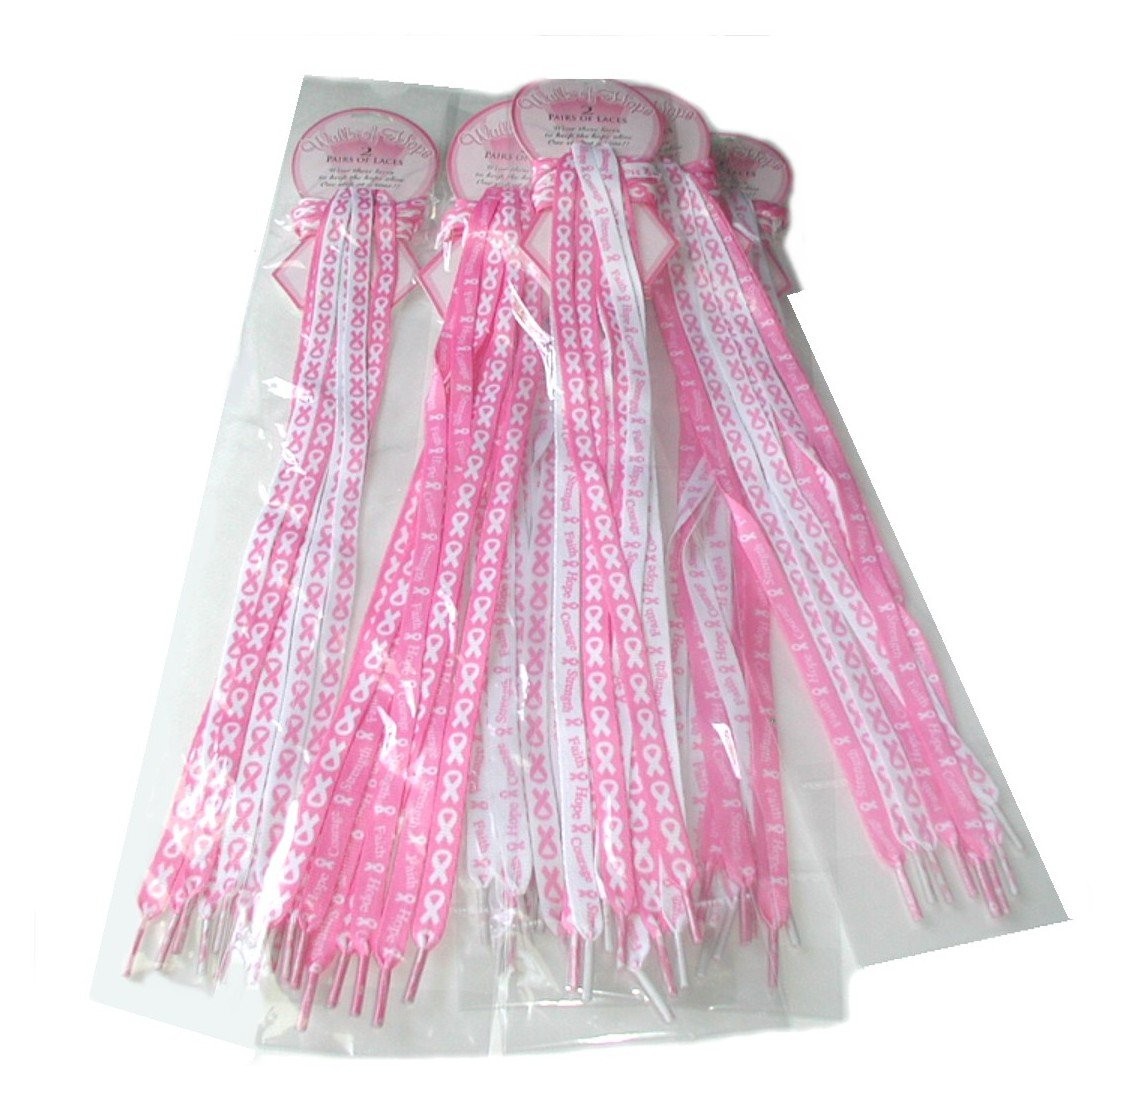 Lot Of 12 Pair - Pink Ribbon Shoe Laces - Breast Cancer Awareness - Fundraising Shoelaces